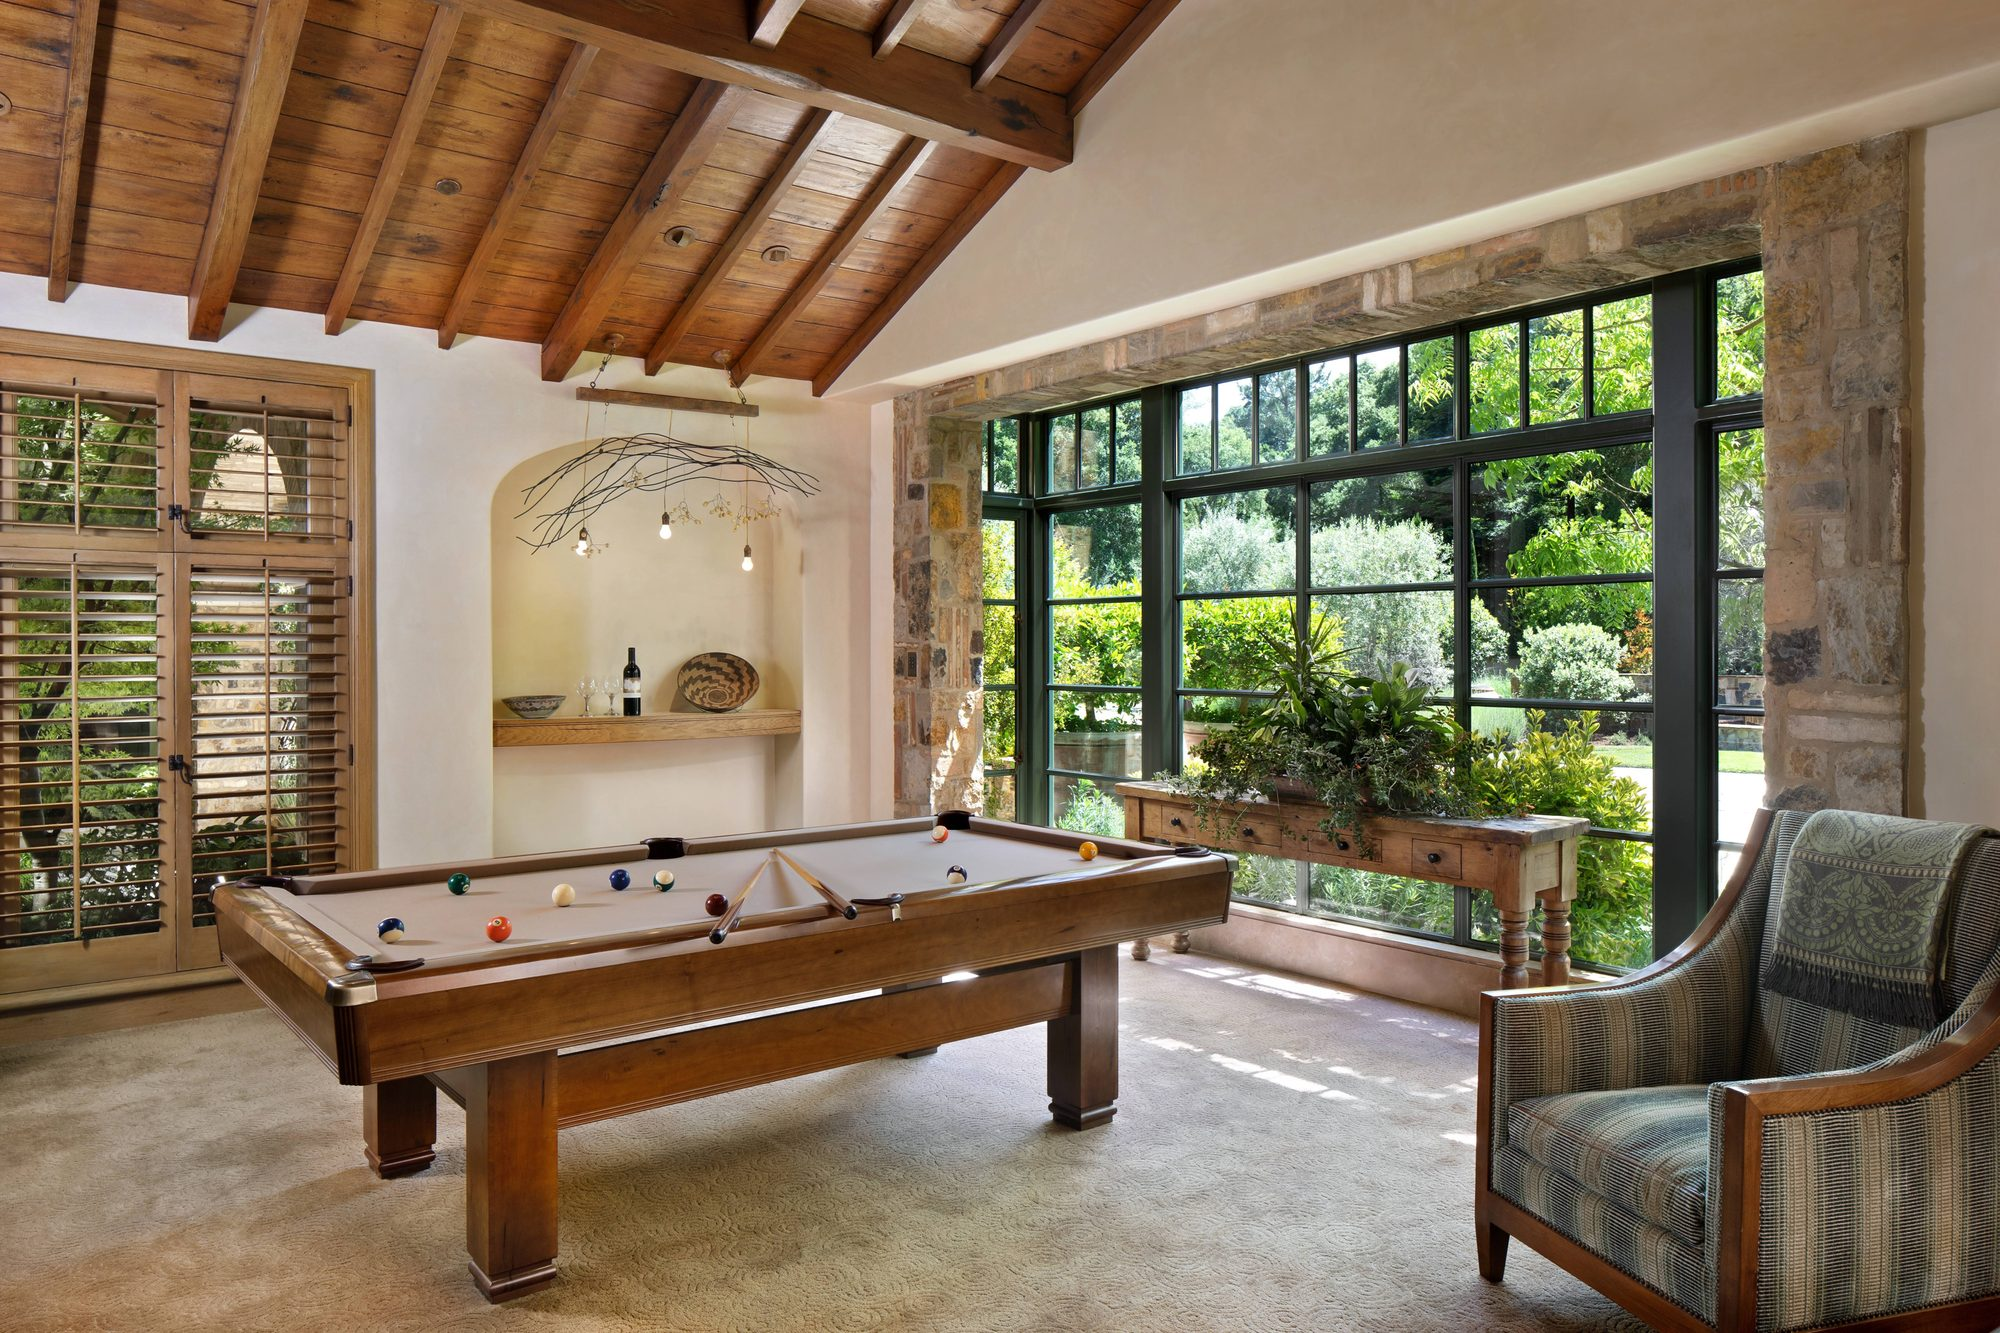 beautiful game room with rustic style. Pool table, vaulted ceilings, all wood ceiling finish.